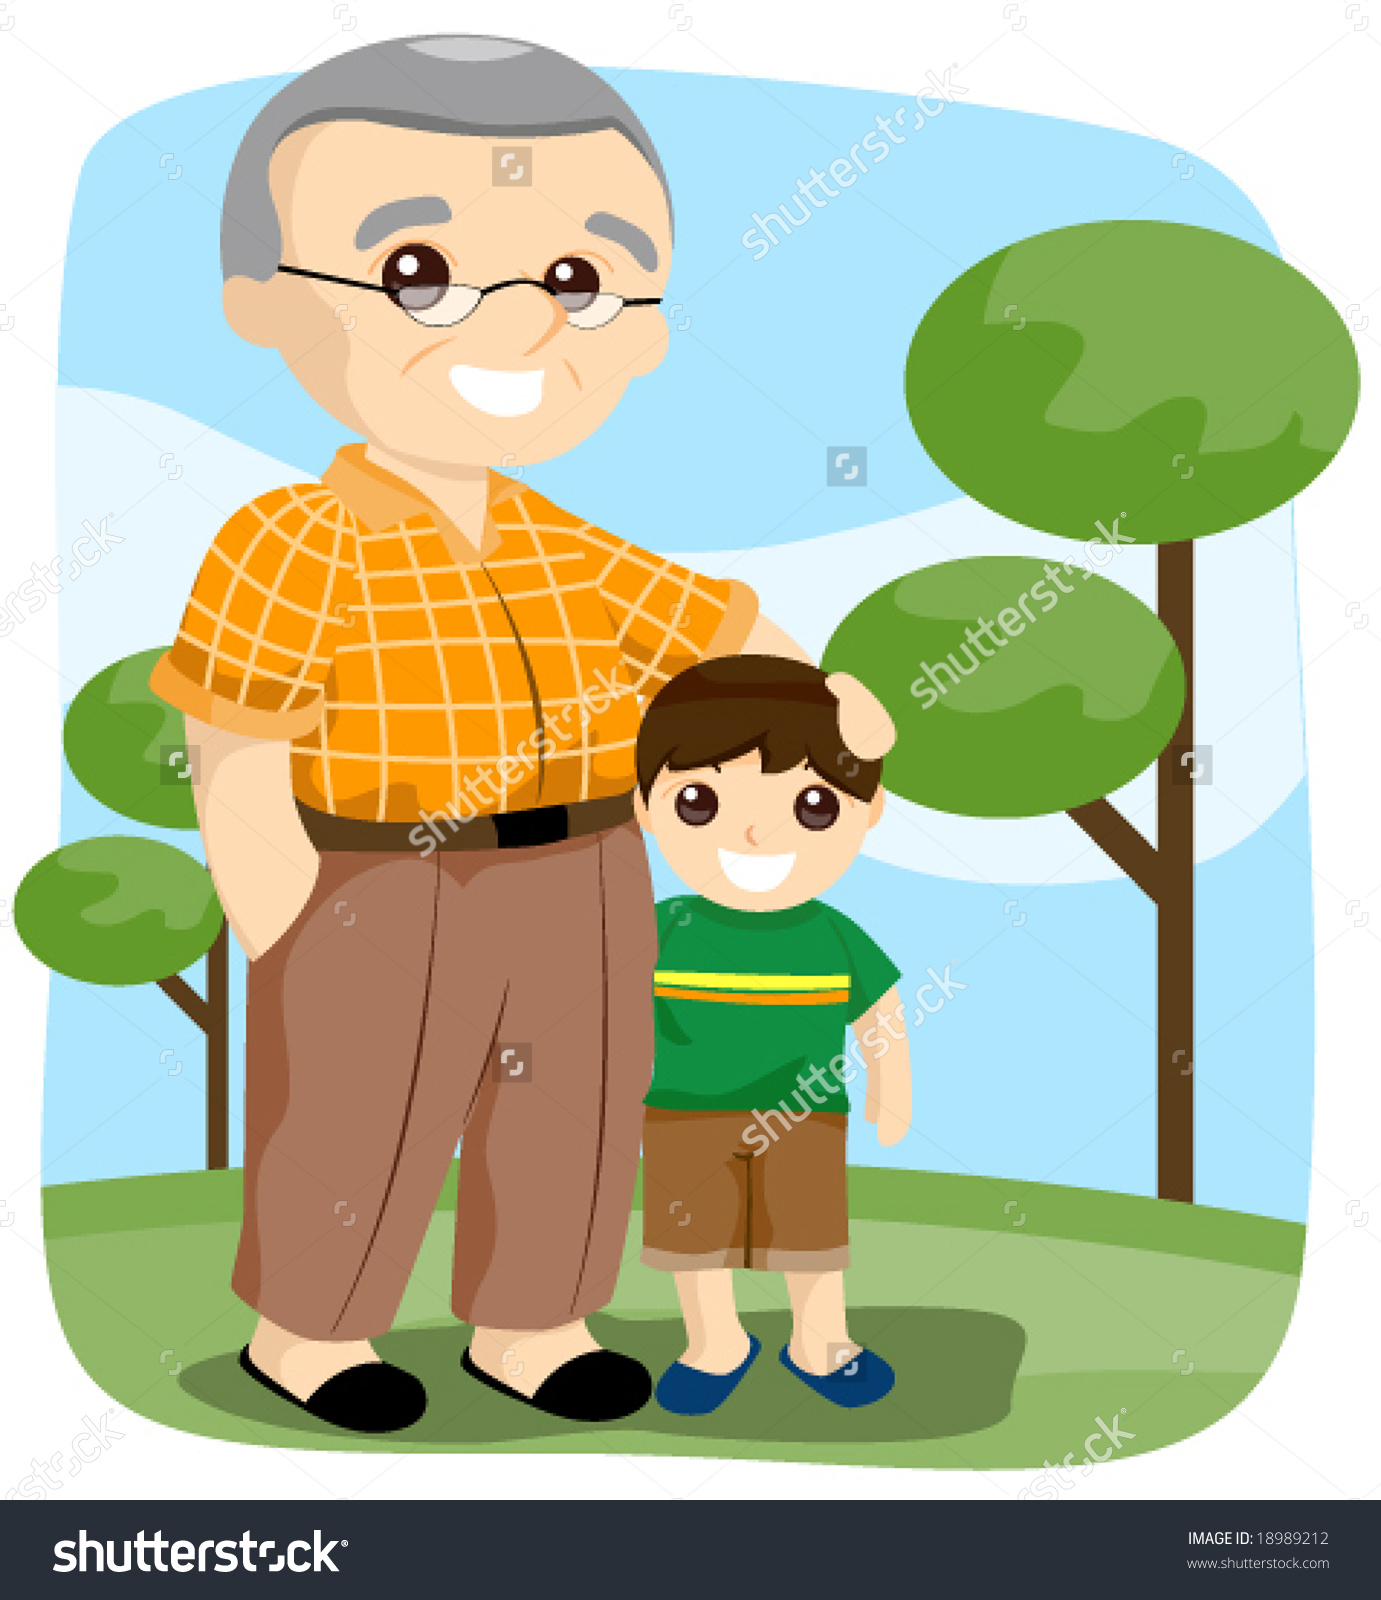 Indian grandfather clipart.